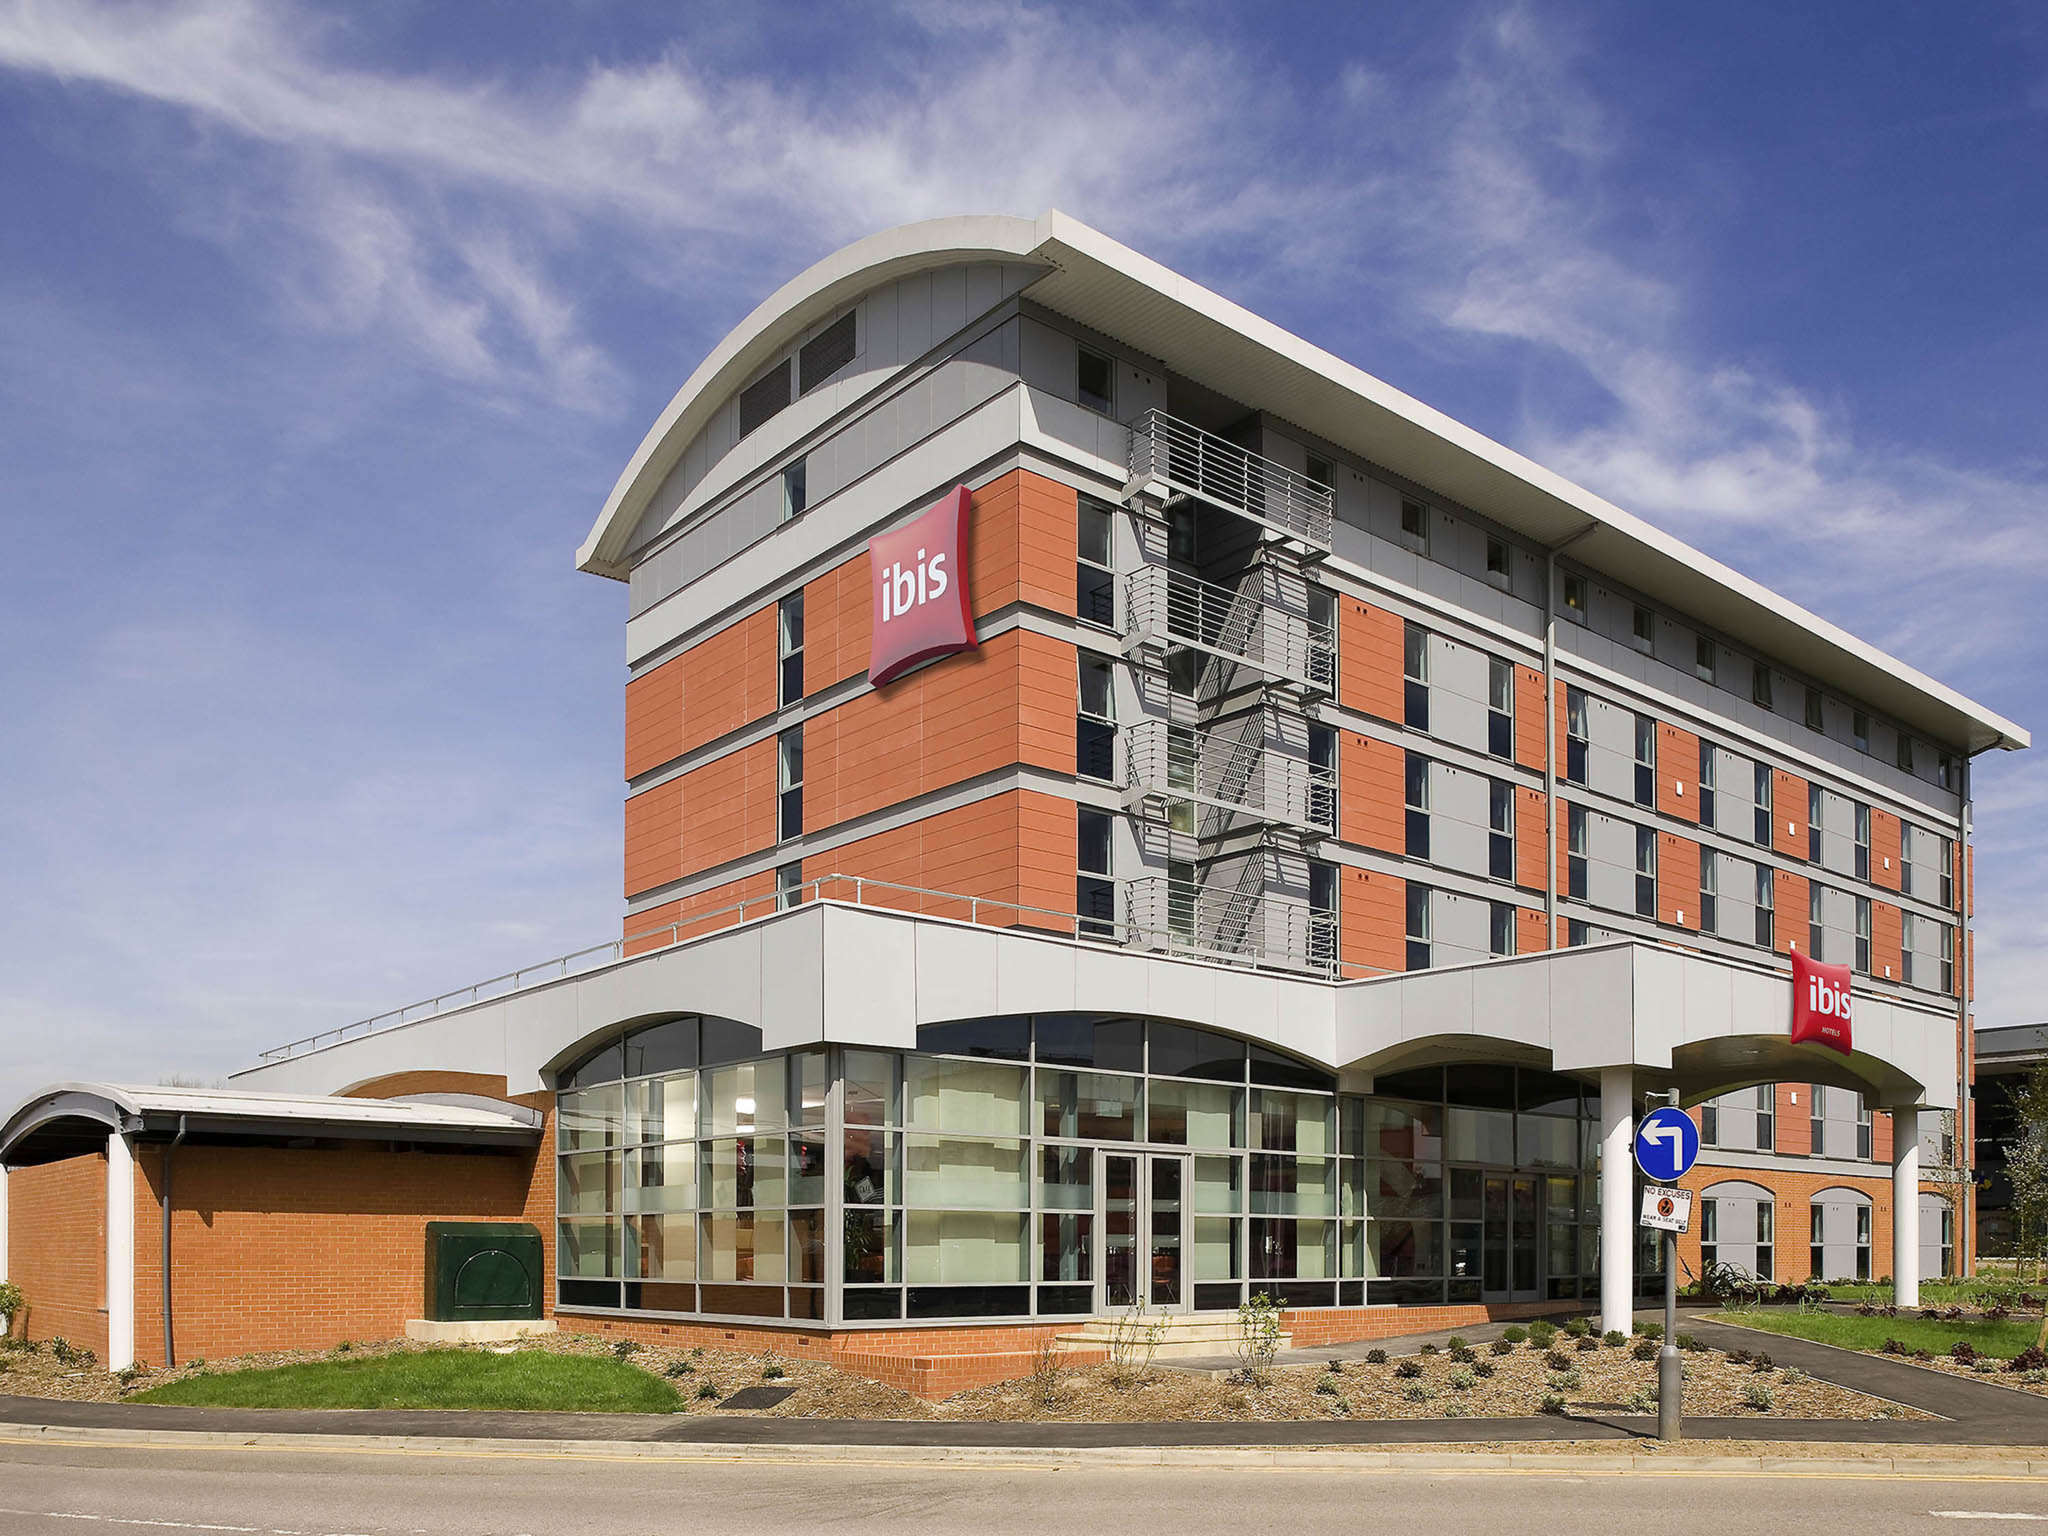 Hotel – ibis Londres Elstree Borehamwood